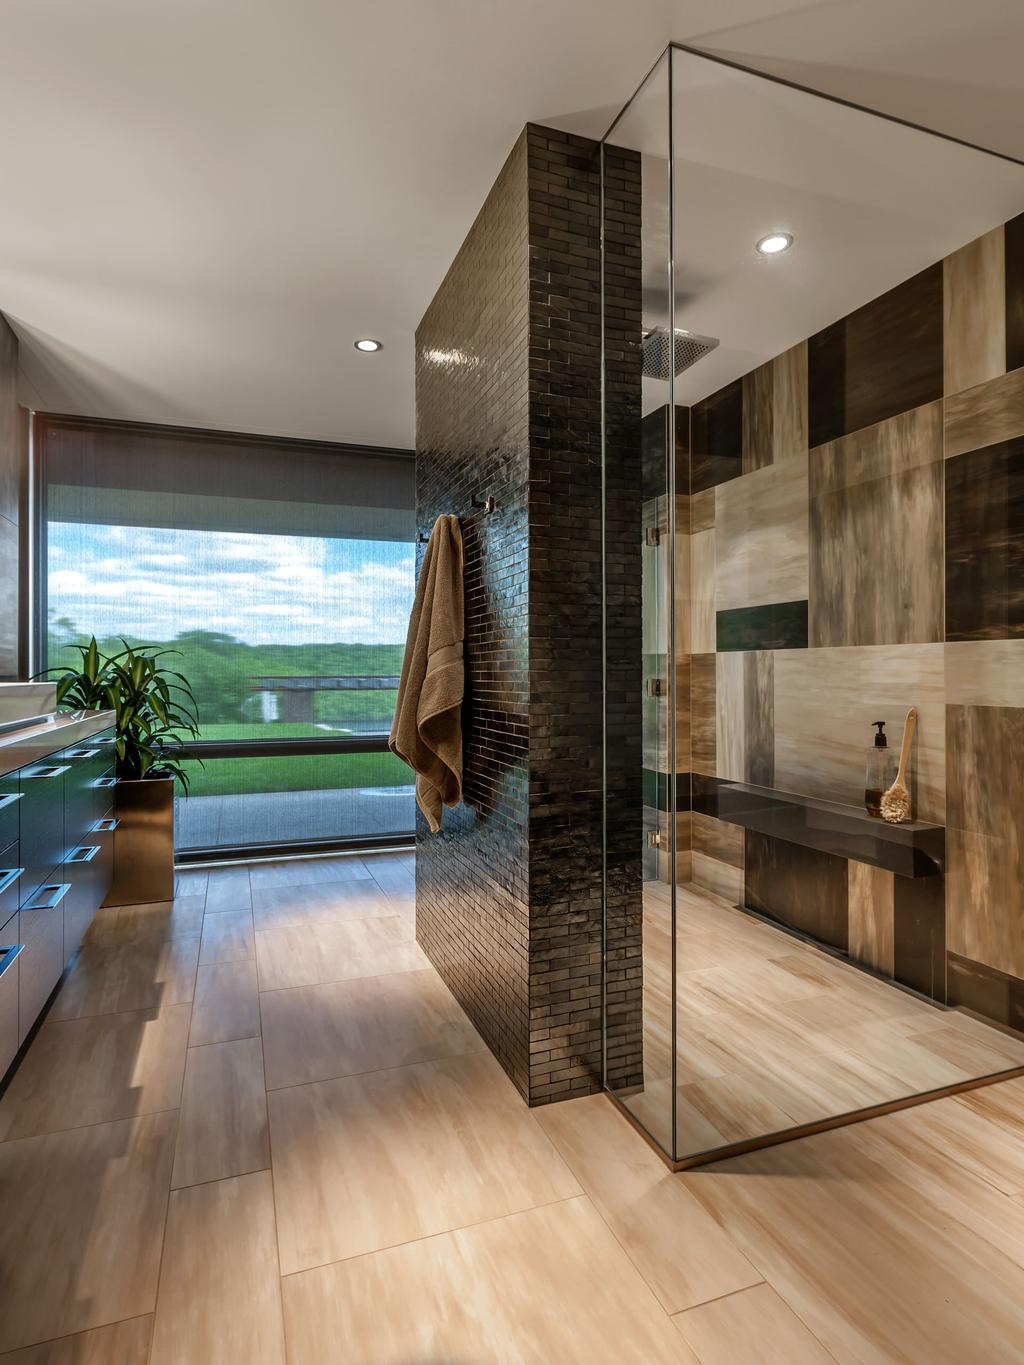 Huge Walk In Shower Best Of Stunning Bathroom with A Large Walk In Shower Surrounded by